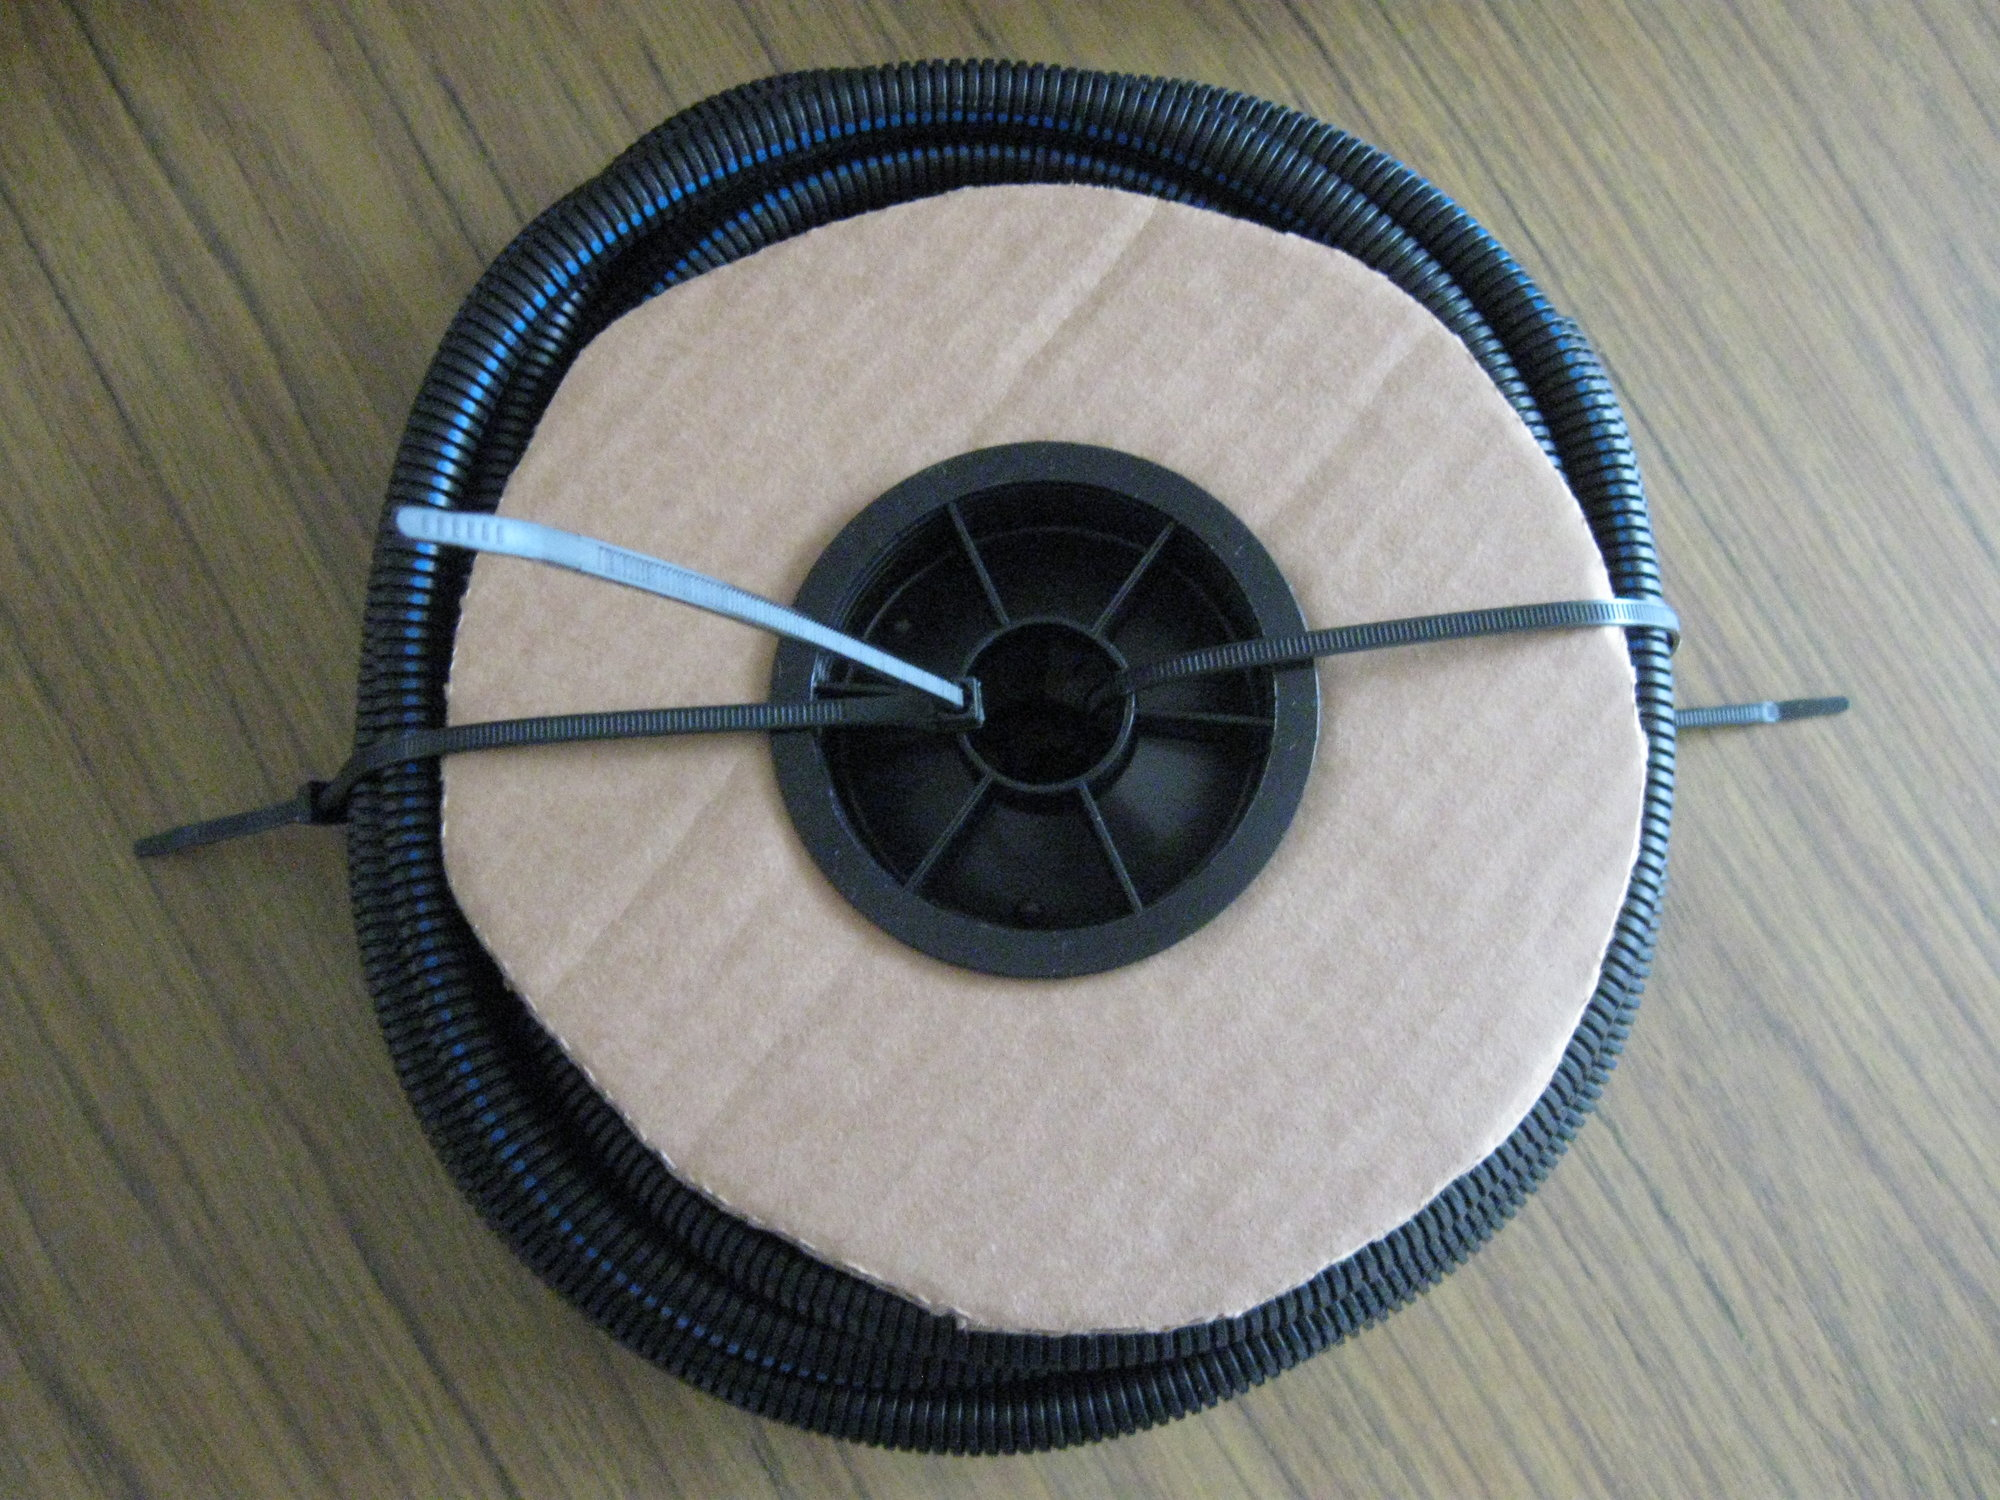 hight resolution of i have for sale three rolls of this material used to cover and protect auto marine wiring and wiring harnesses these rolls are 100 ft each when new and